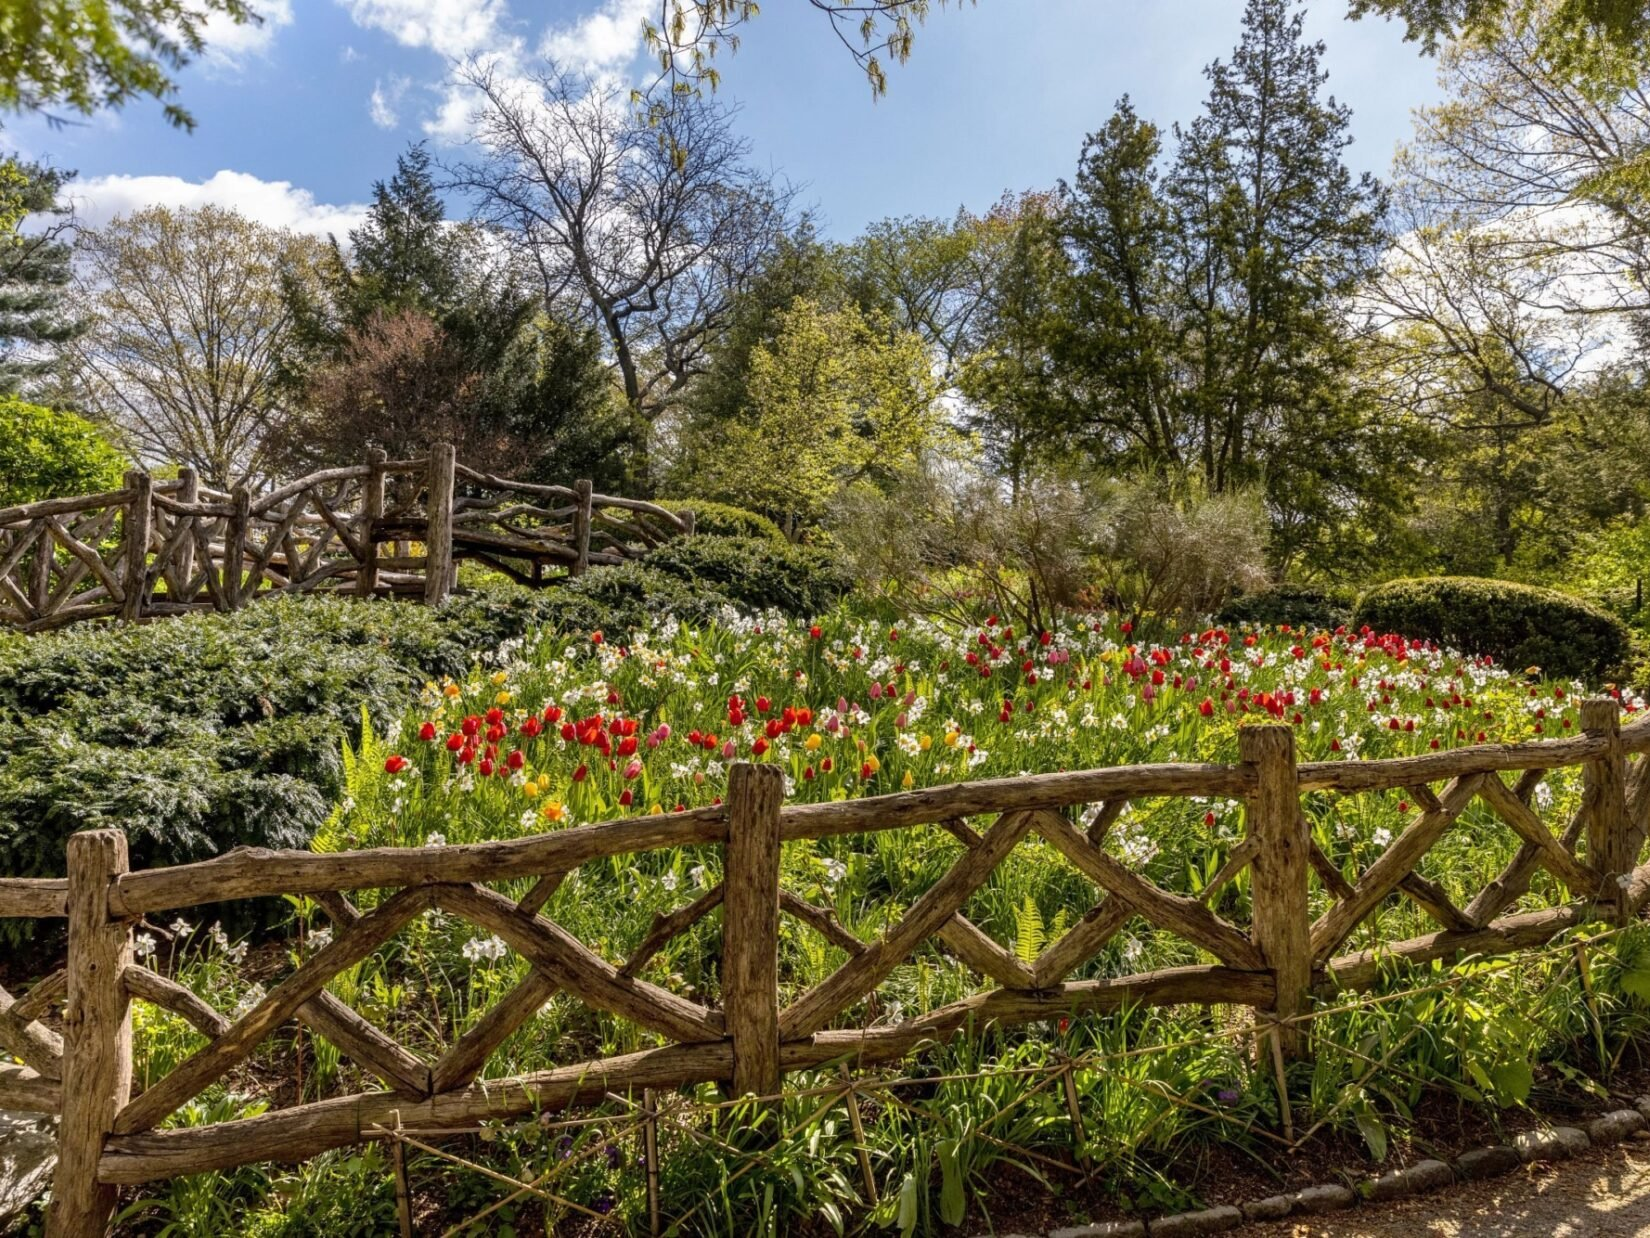 Rustic fencing surrounds the blooming flowers of the Garden